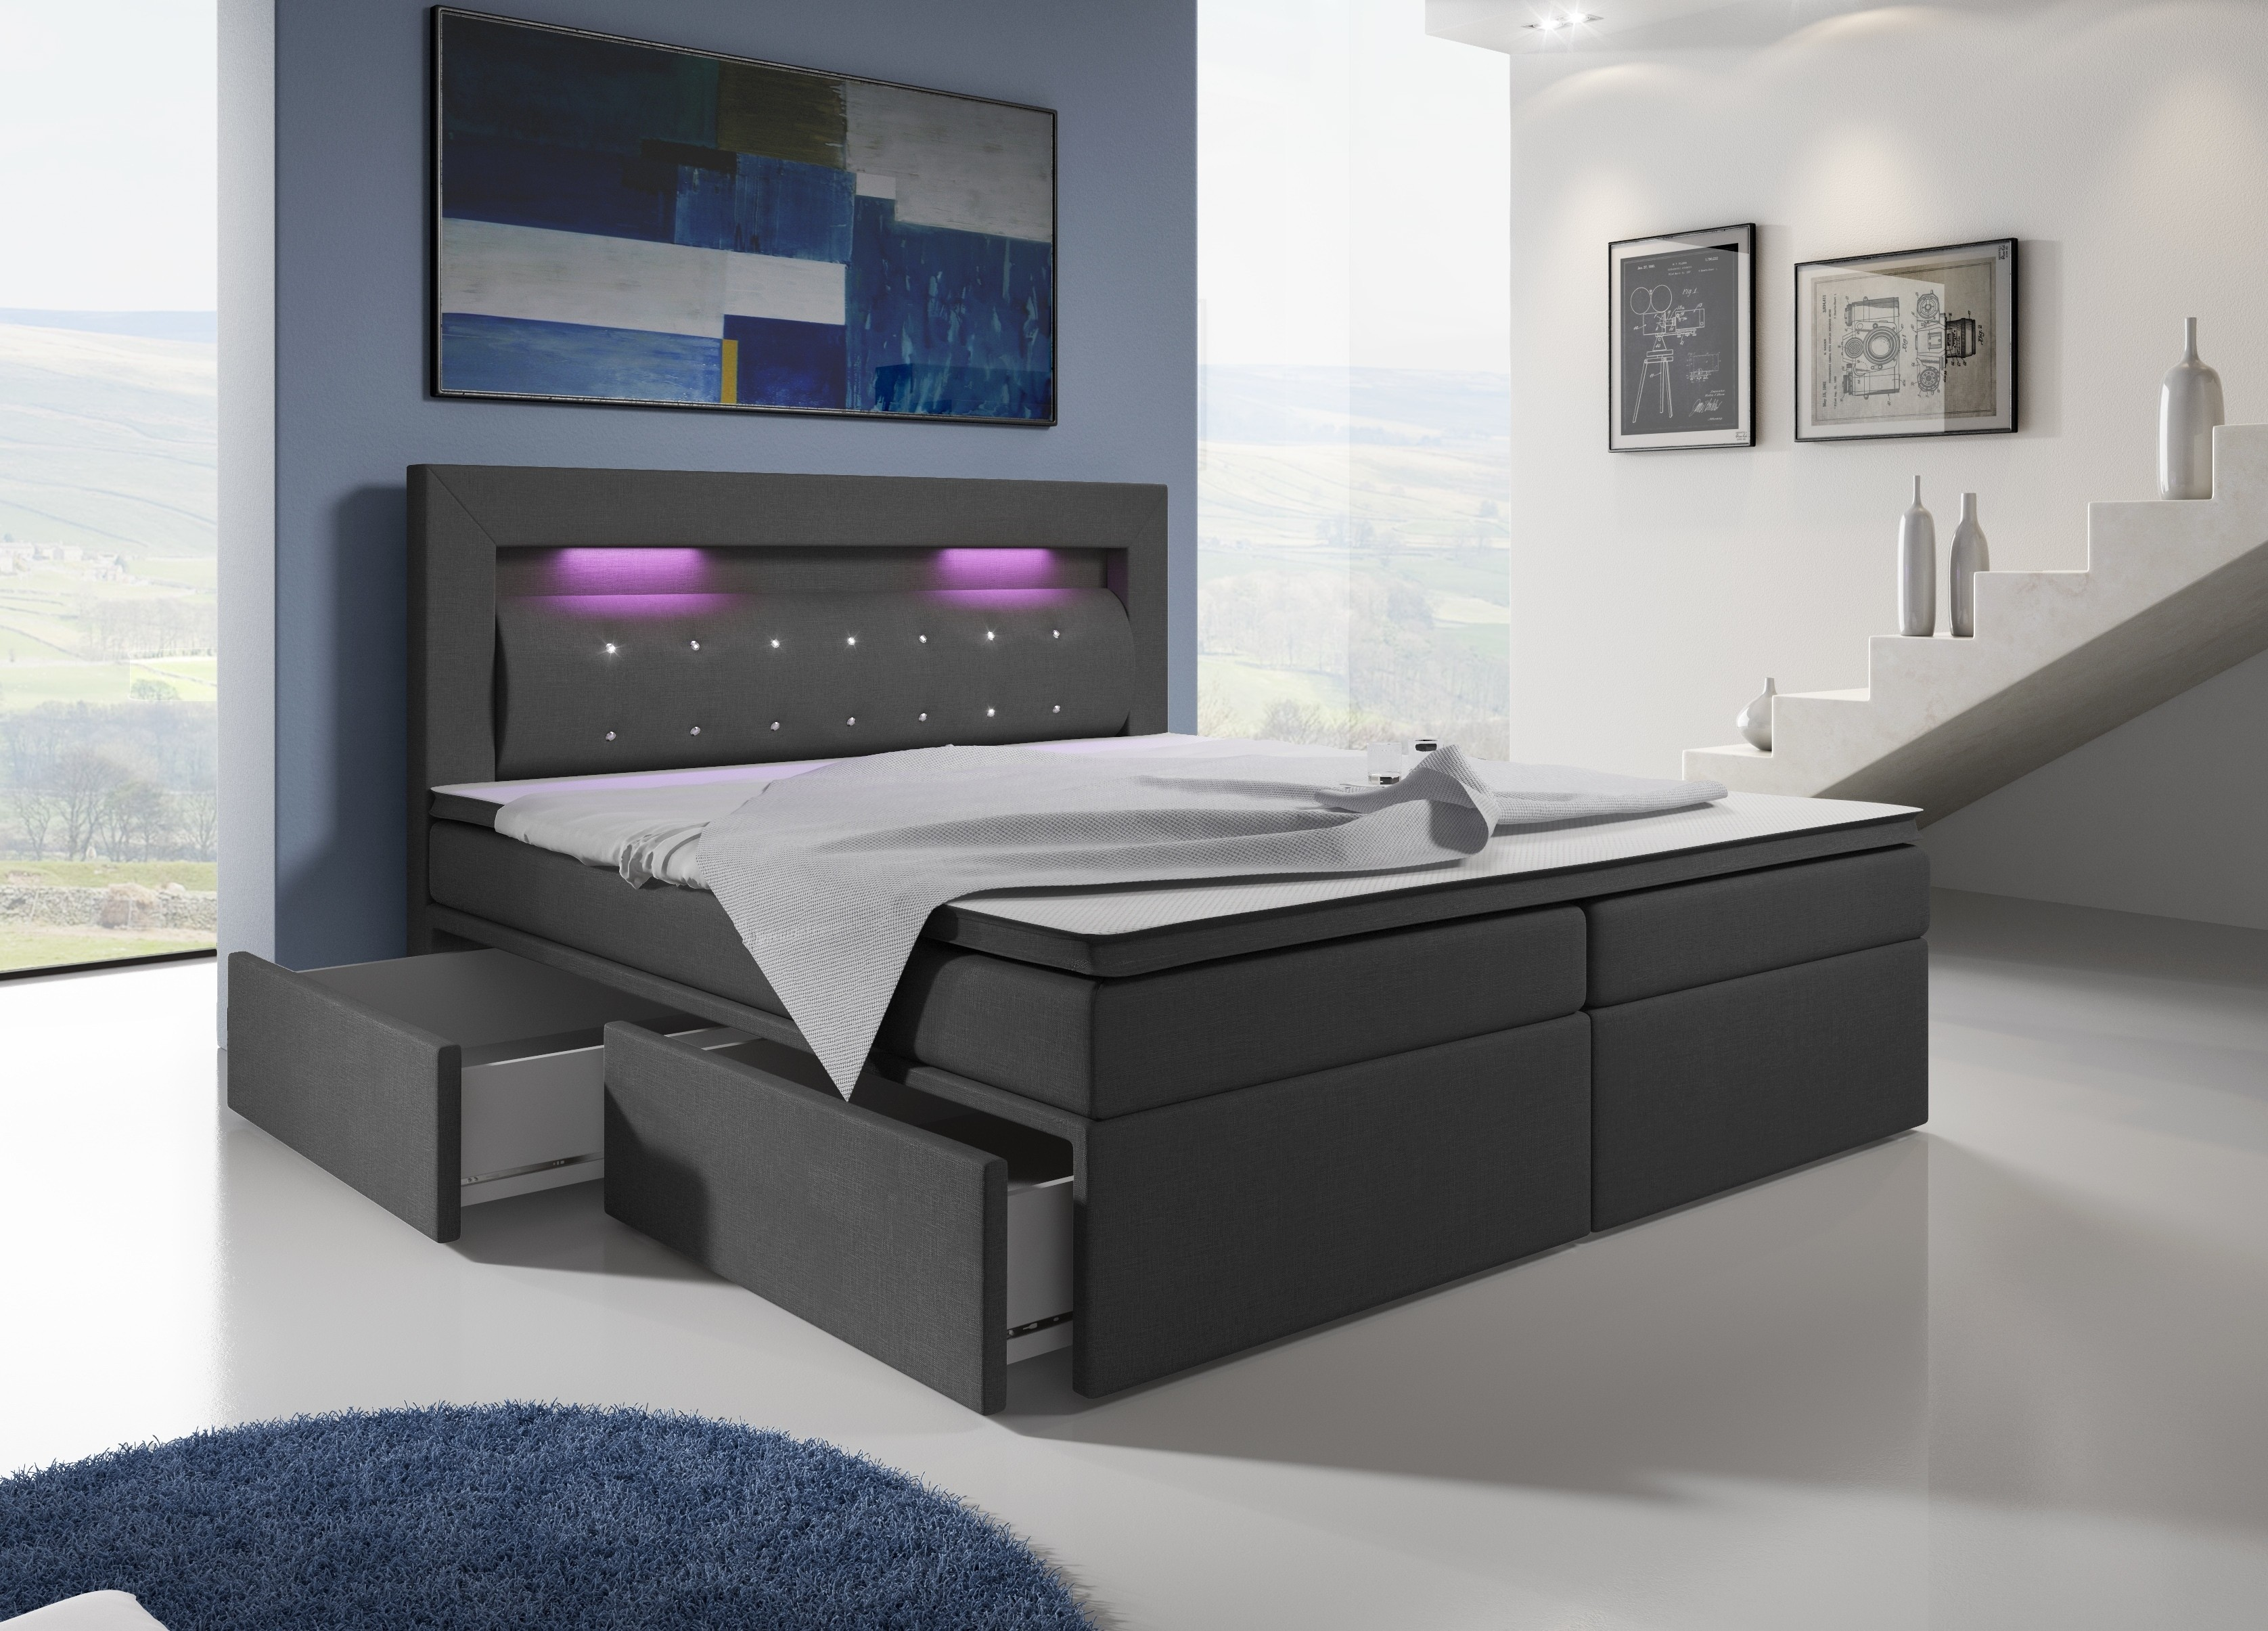 boxspringbett malaga mit 4 schubladen und led licht in verschiedene farben verf gbar betten. Black Bedroom Furniture Sets. Home Design Ideas